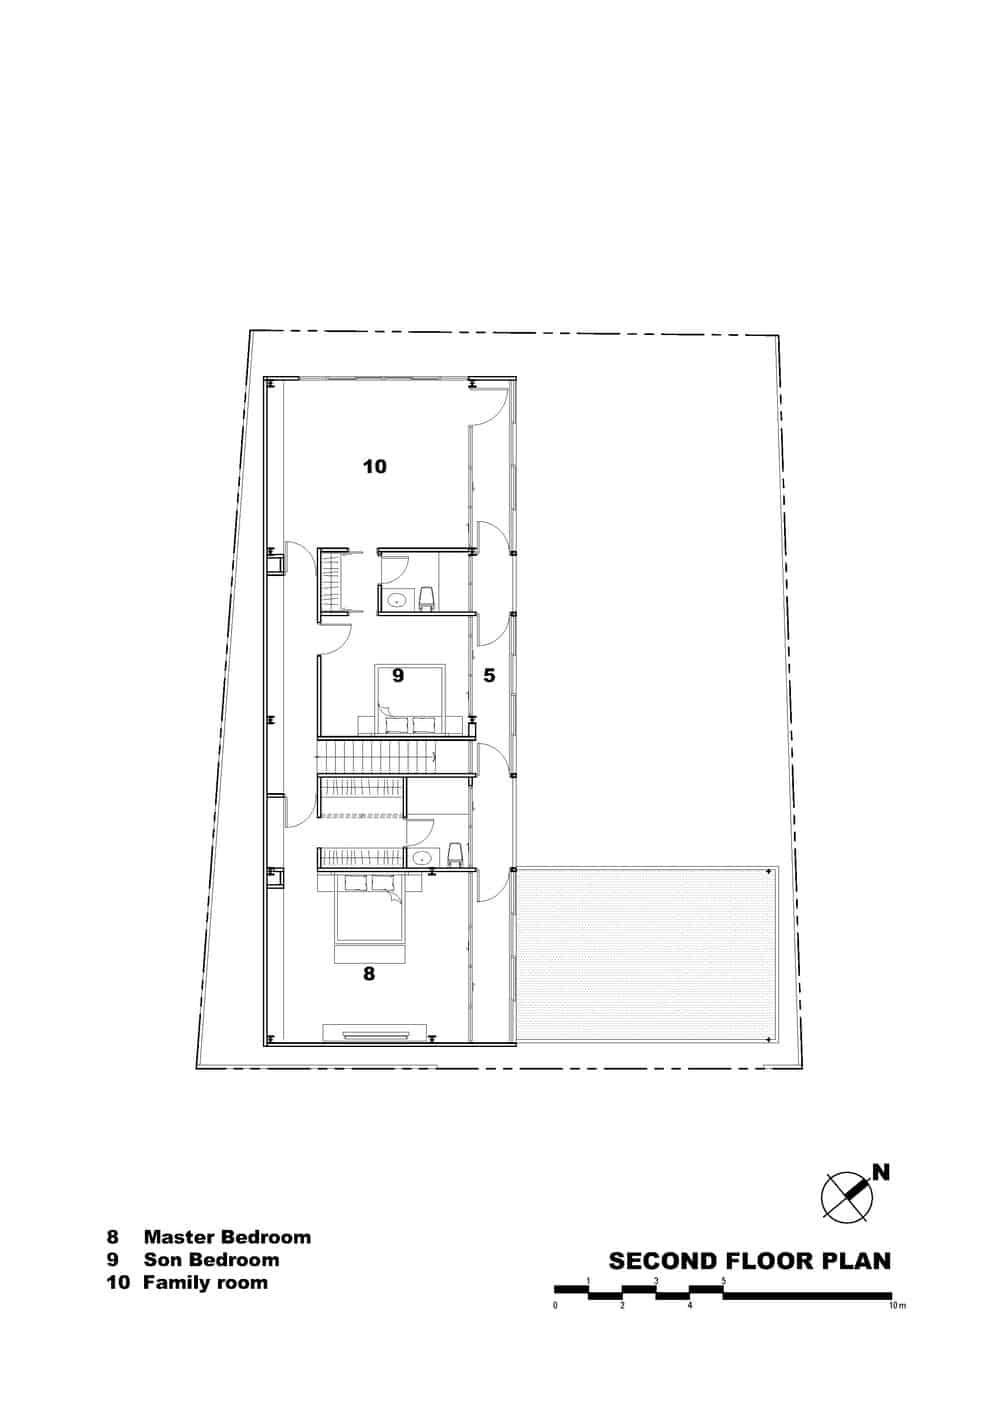 This is an illustration of the second level floor plan of the house with various sections of the house labeled.